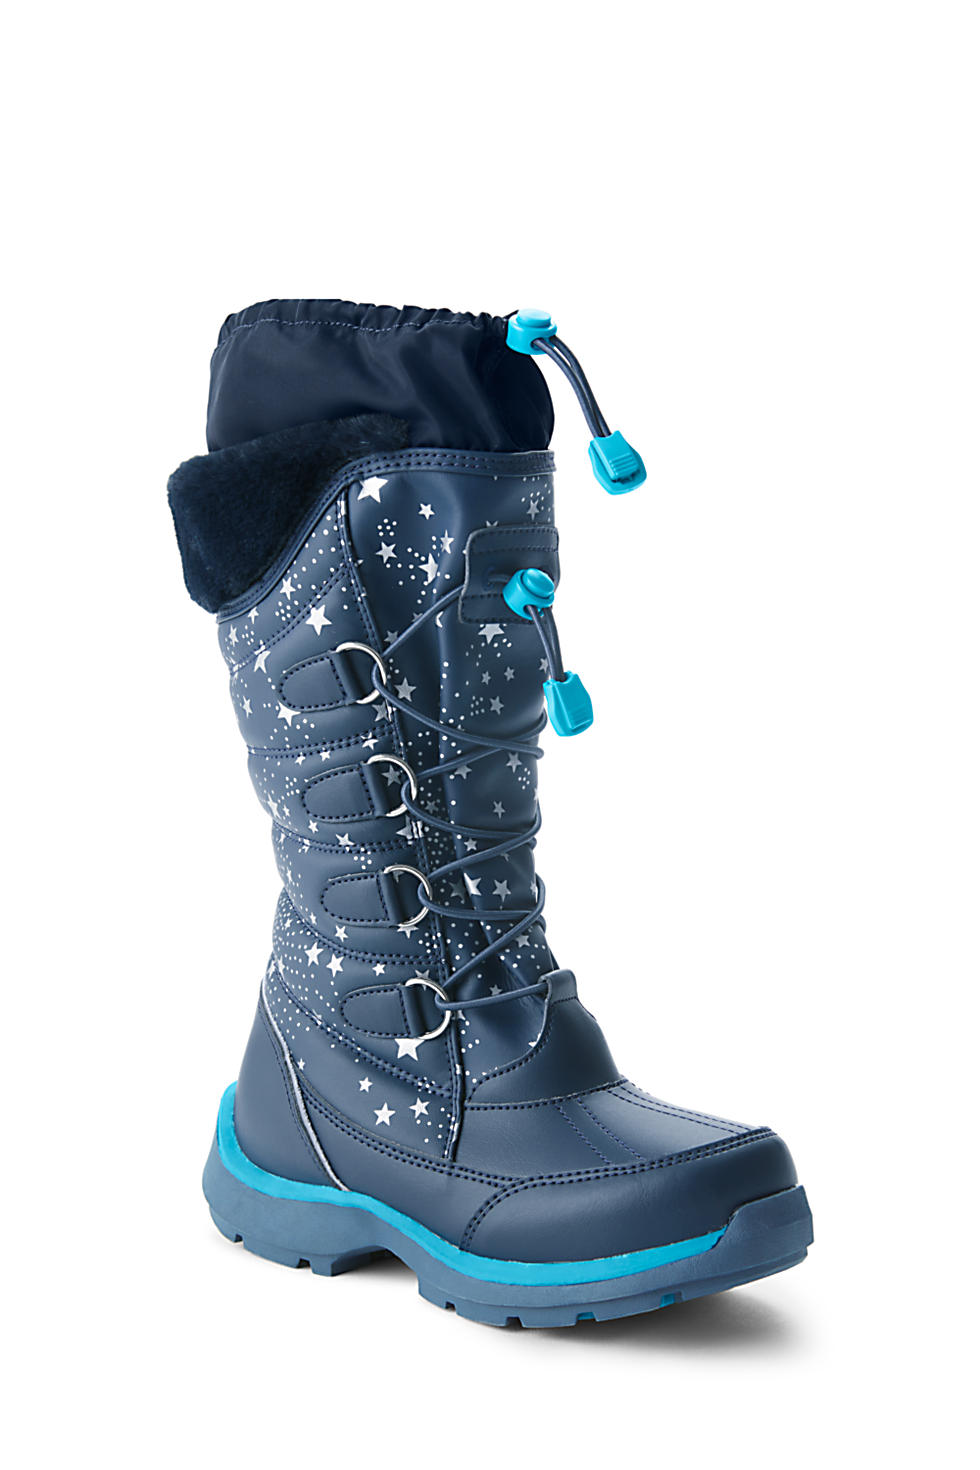 Lands End Girls Snowflake Insulated Winter Snow Boots